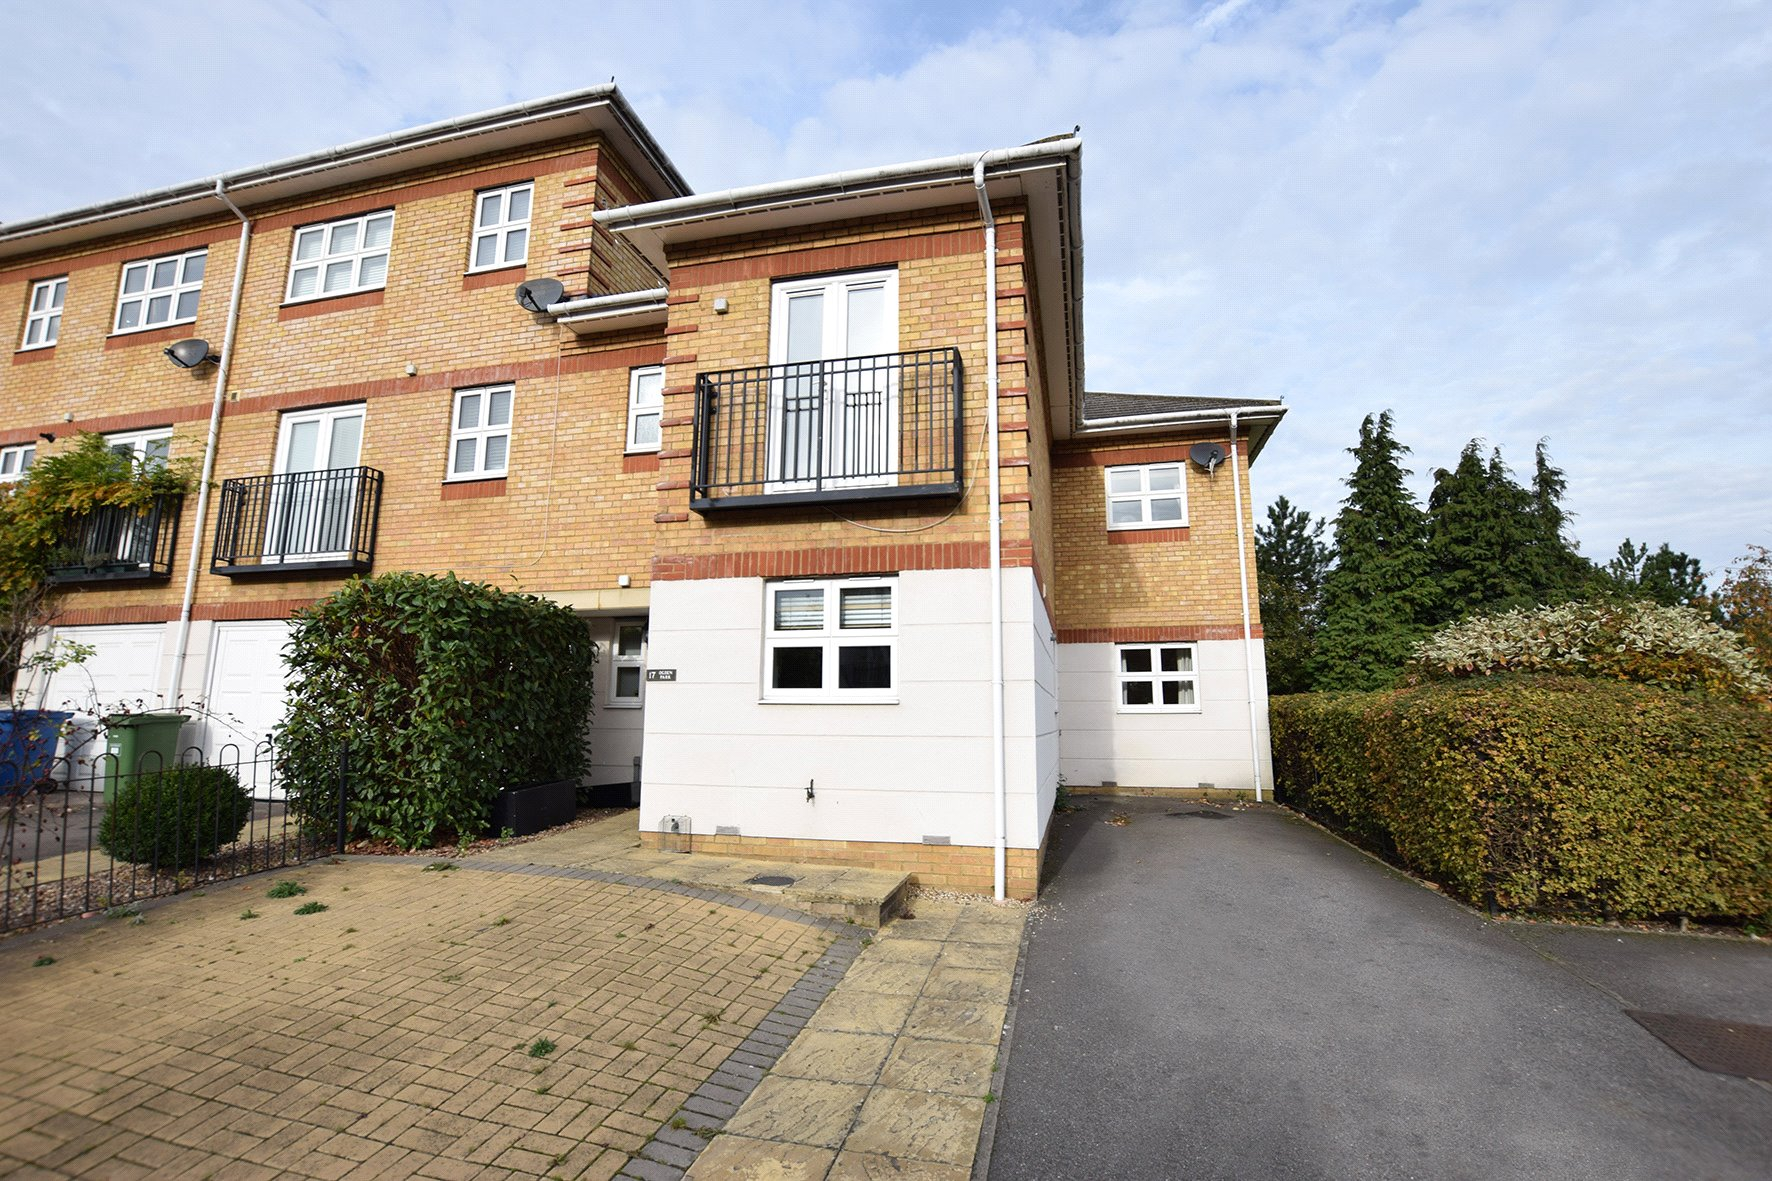 3 Bedrooms End Of Terrace House for sale in Ogden Park, Bracknell, Berkshire, RG12